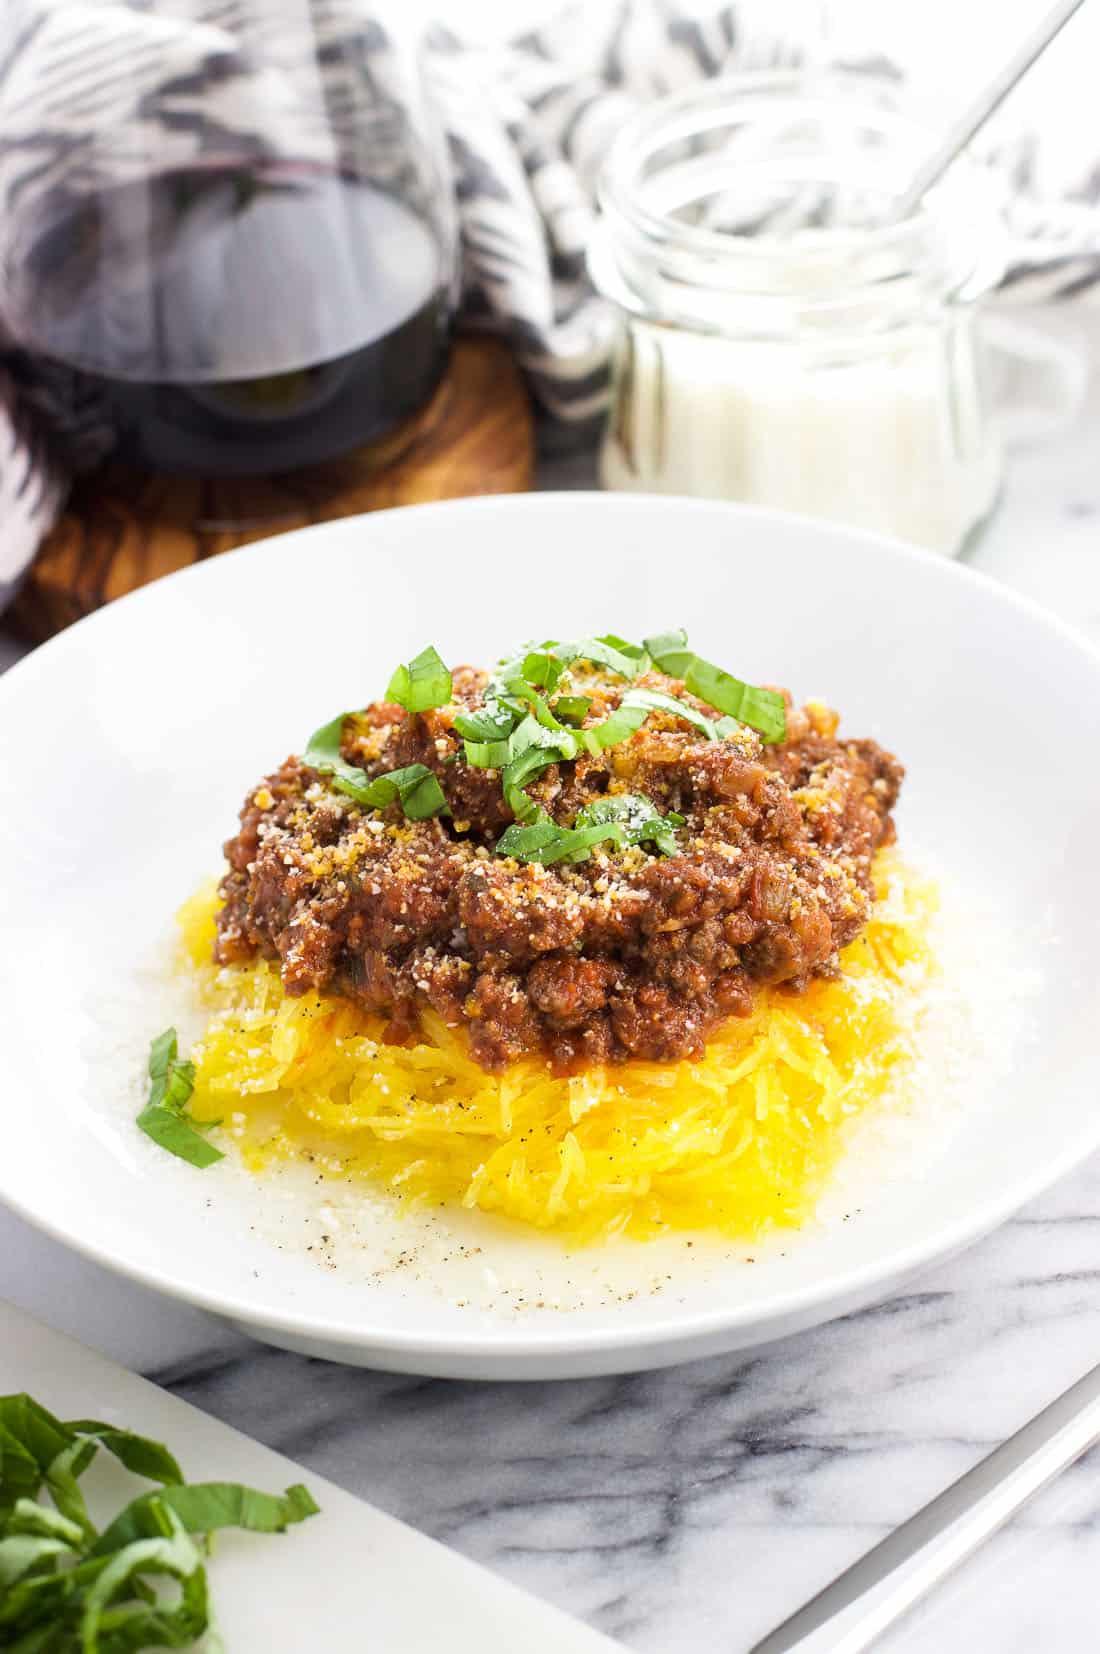 Spaghetti squash bolognese in a bowl with Pecorino Romano and basil on top as garnish, with extra cheese and a glass of red wine in the background